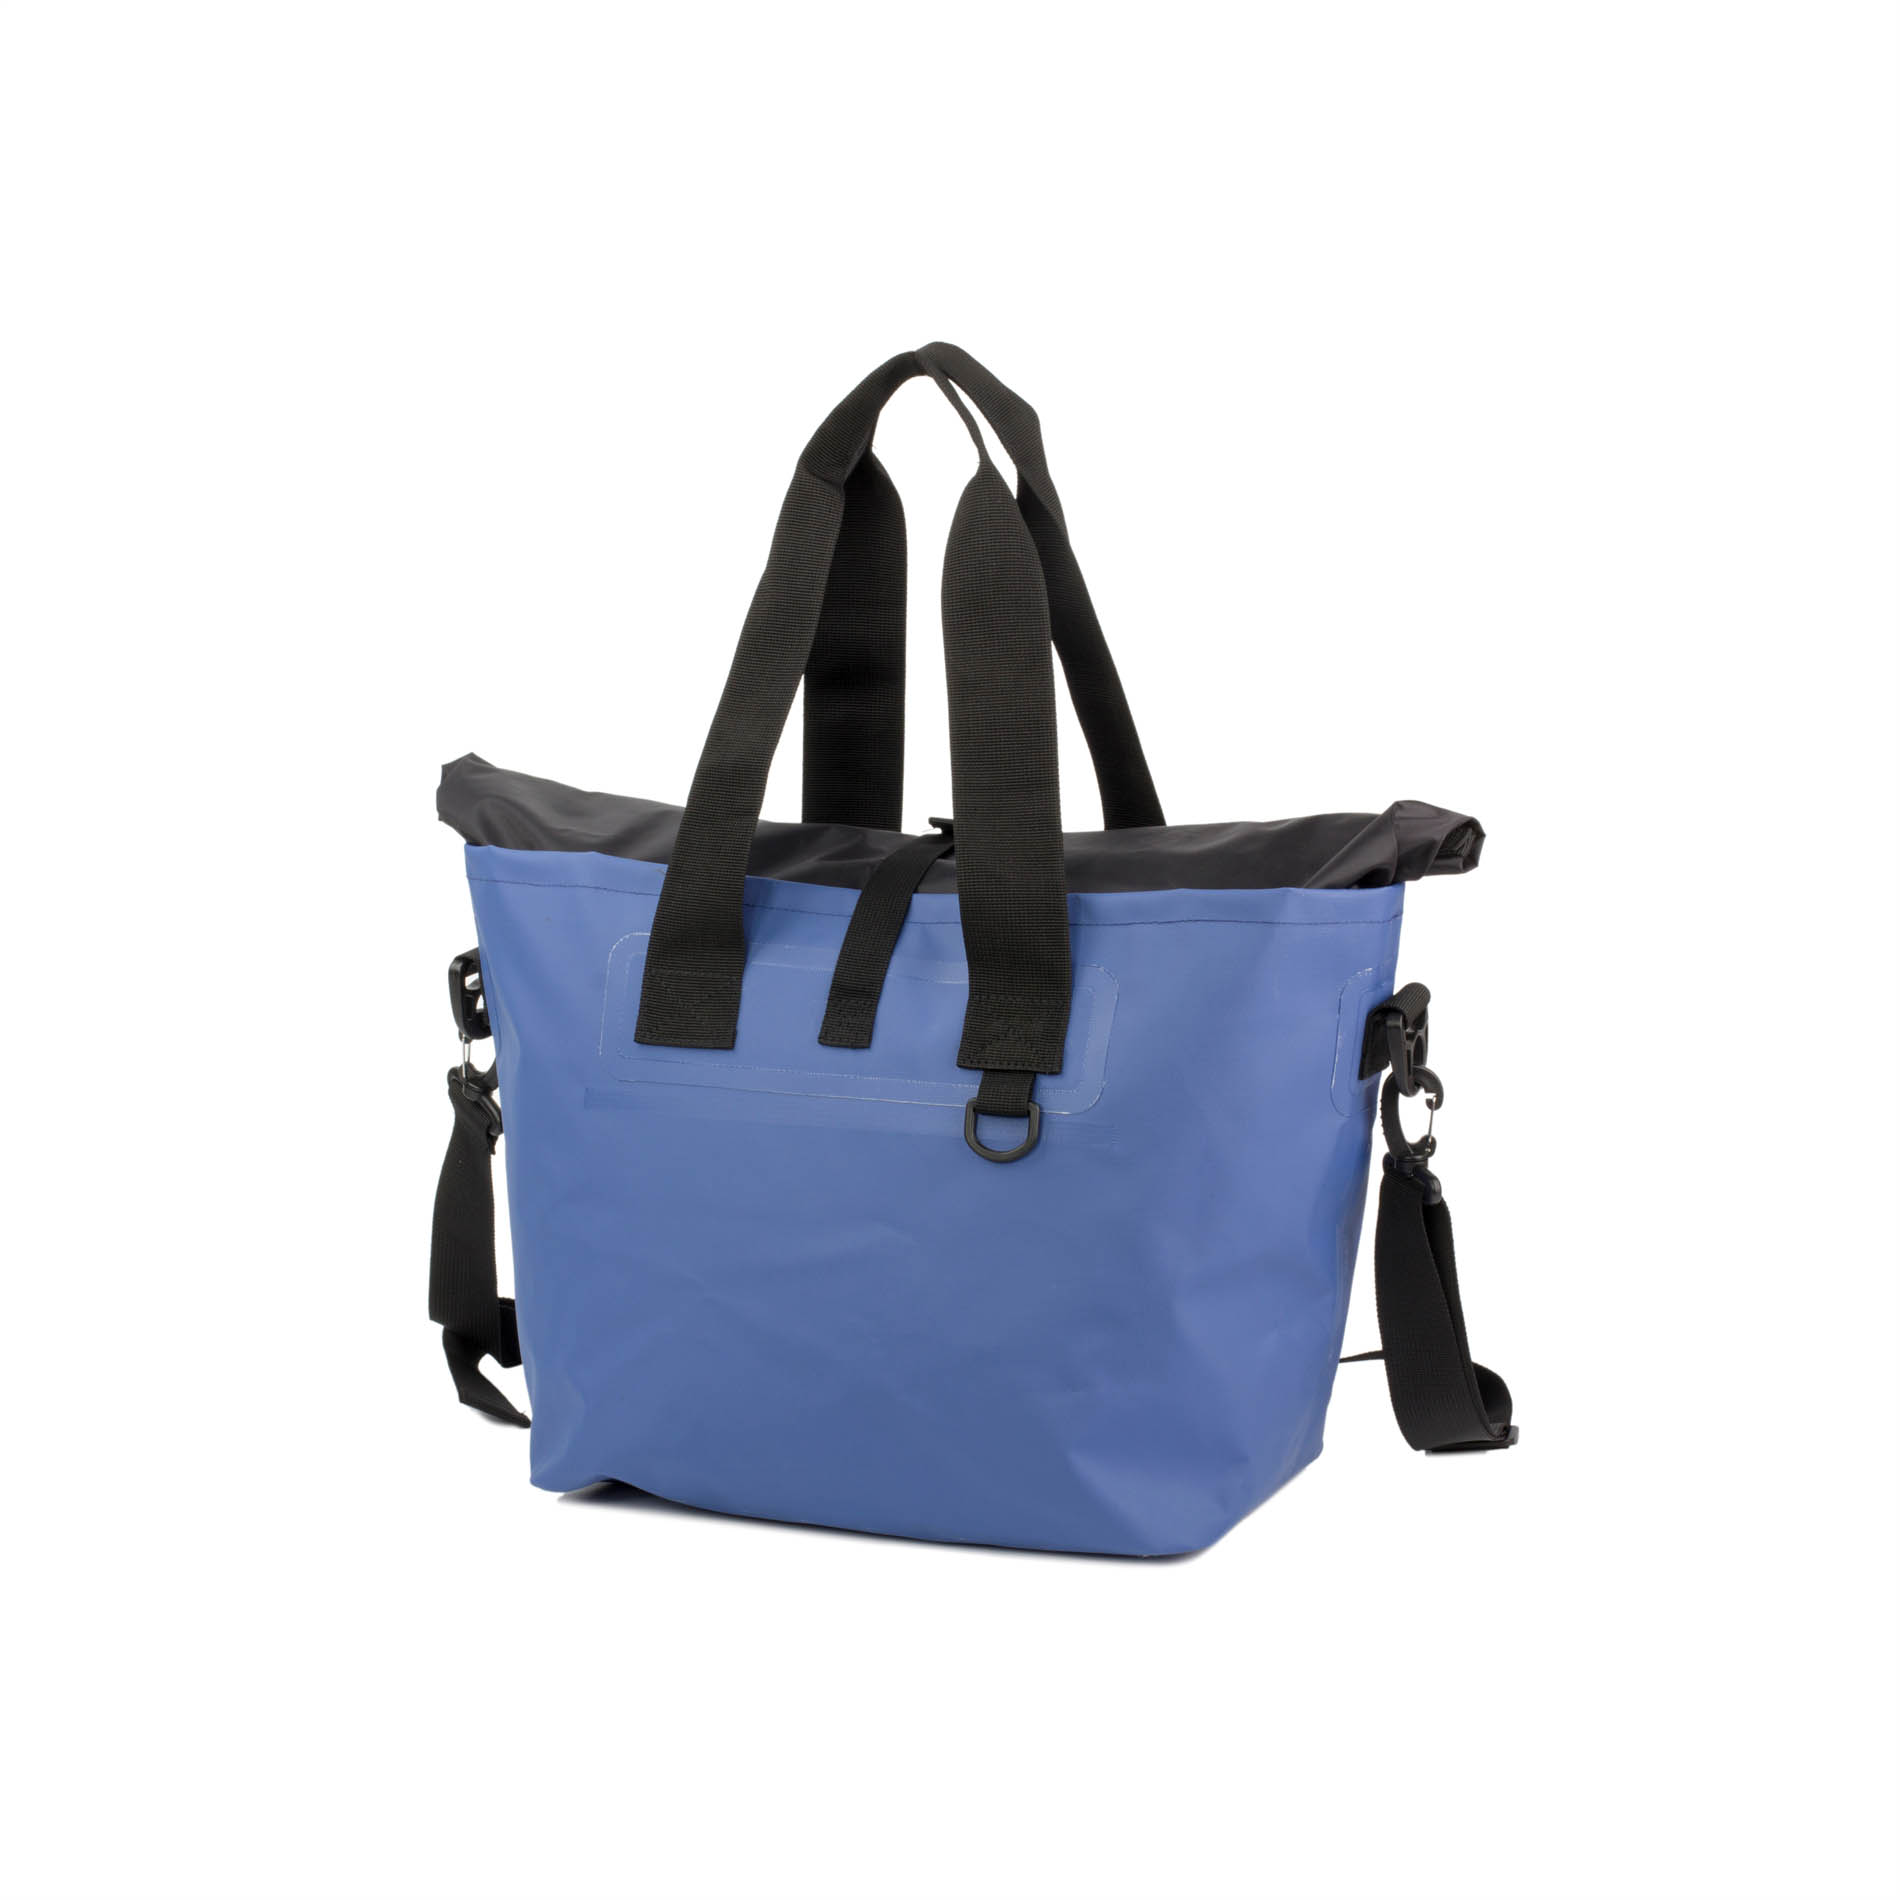 Wateproof Picinic Fashion Lunch Cooler Tote bag 24L